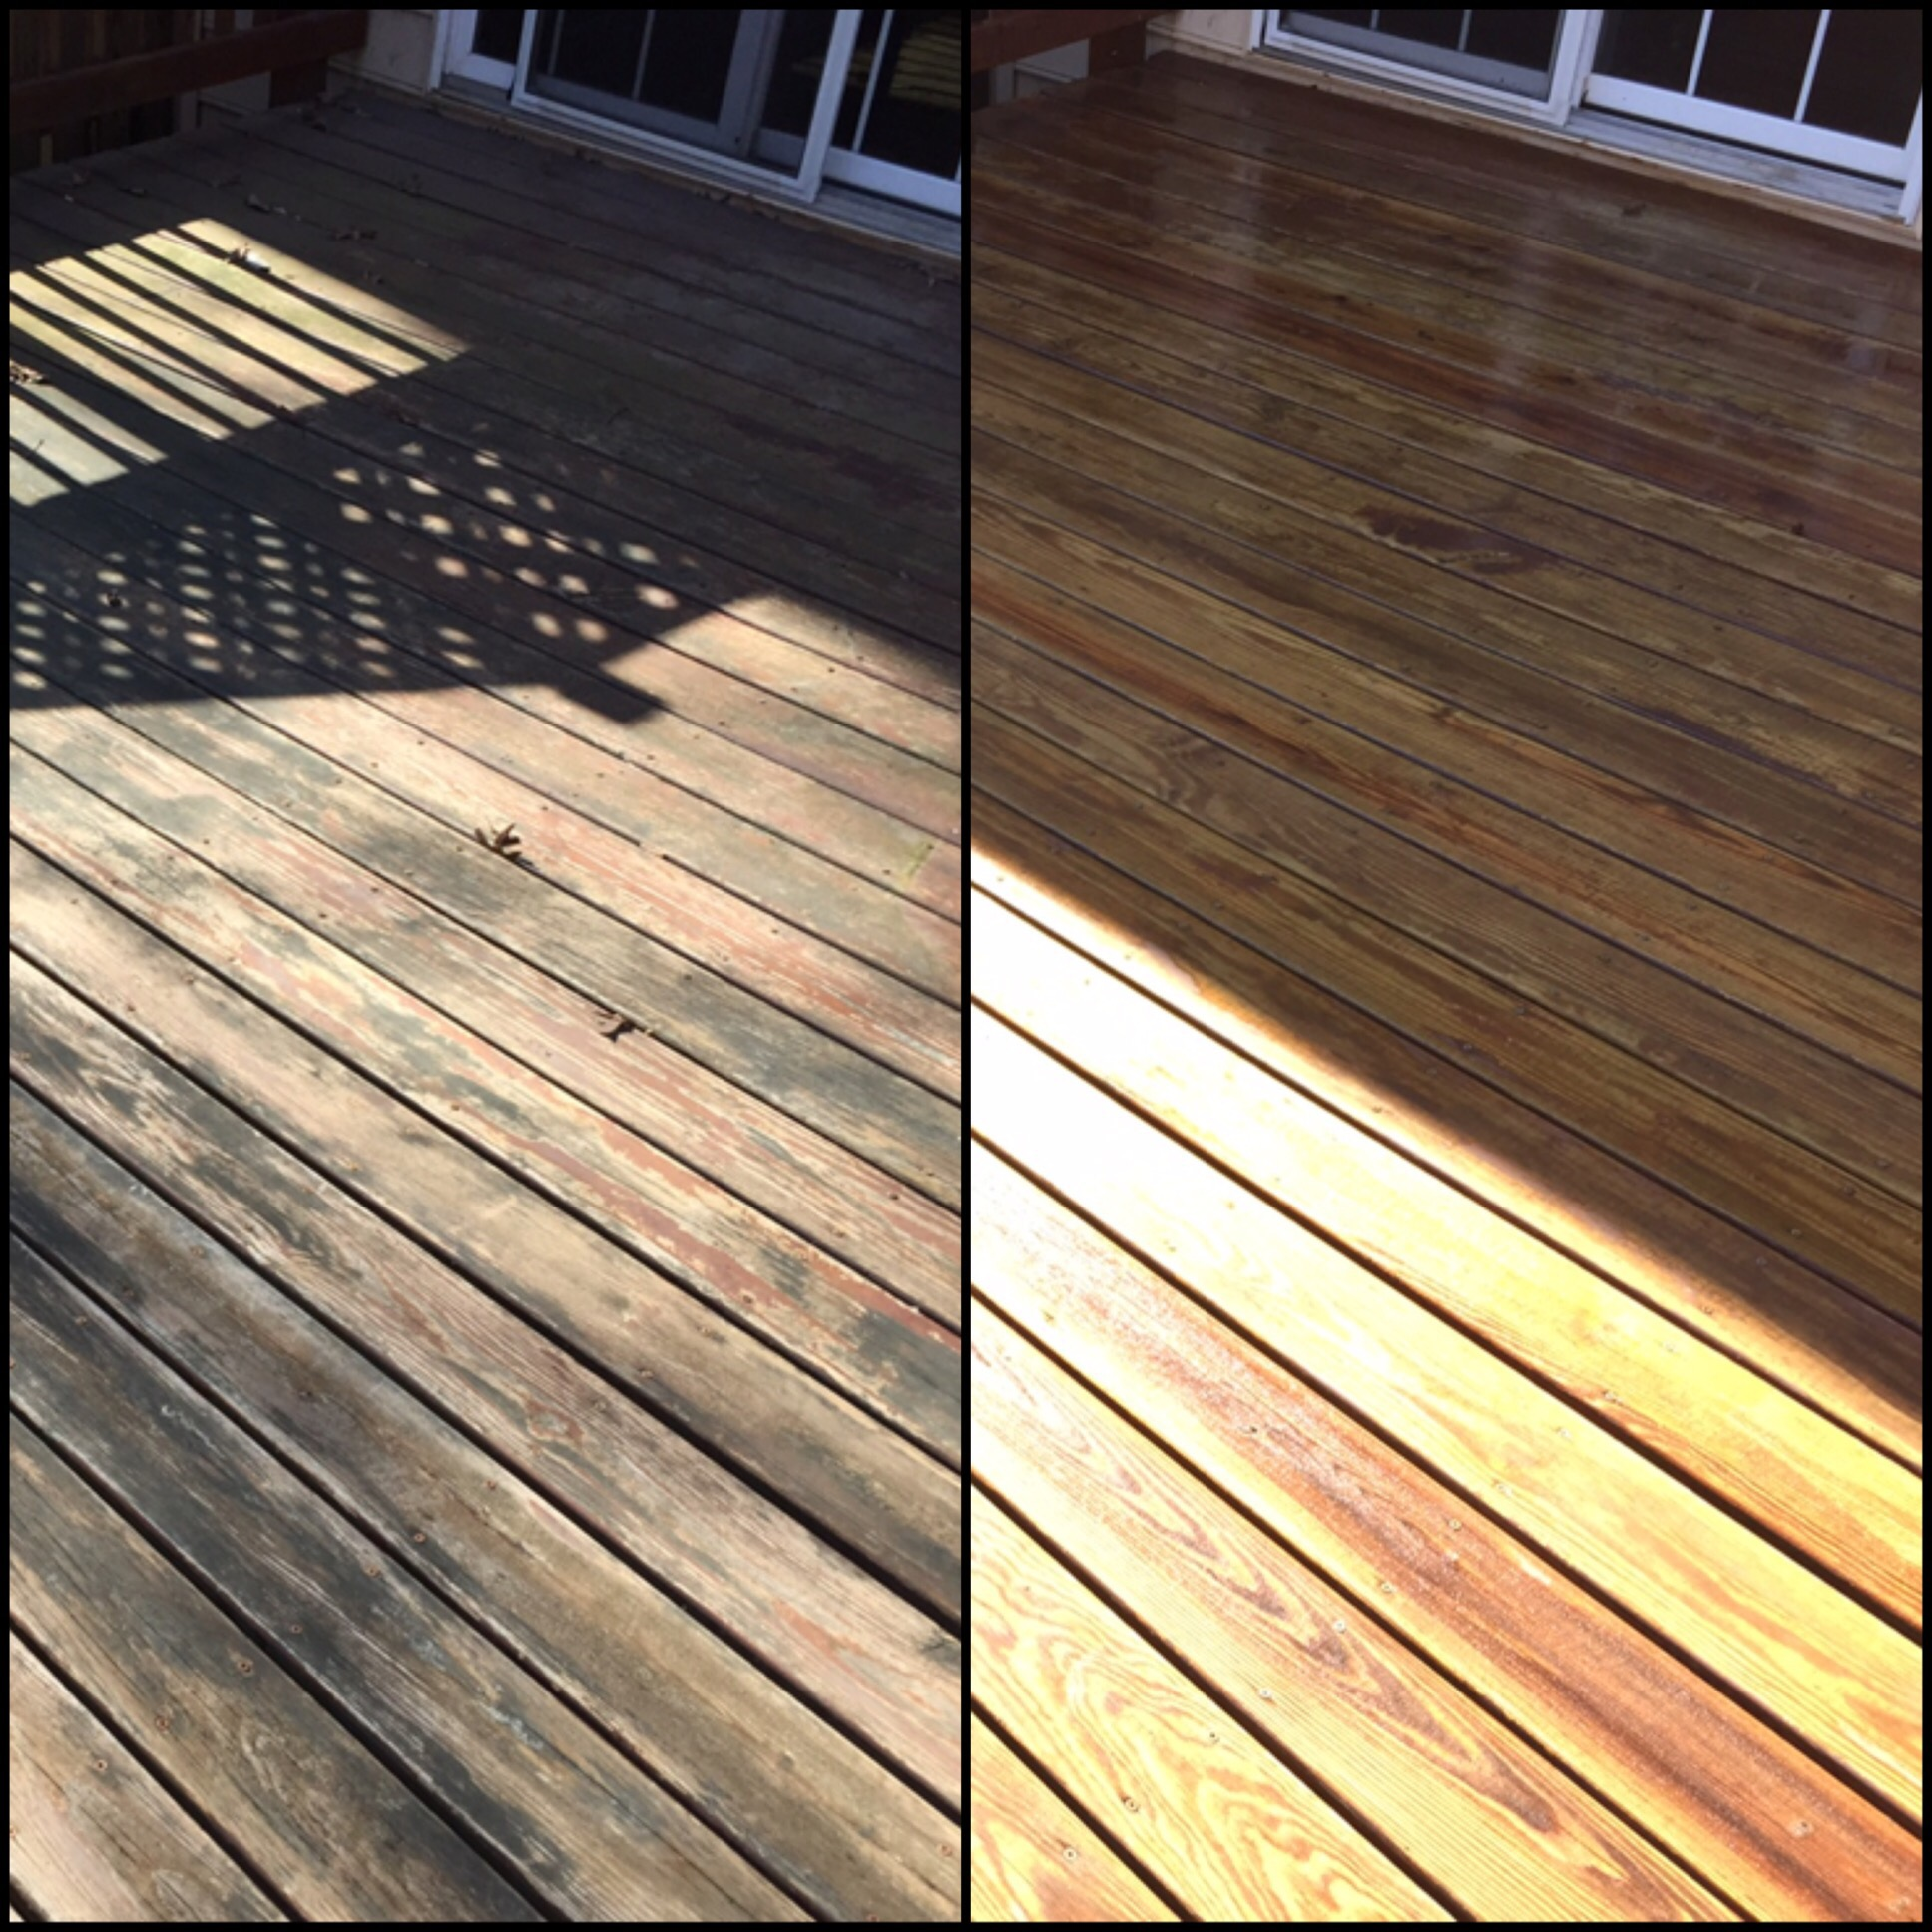 Deck Power Washing - Deck And Patio Services Mickleton, New Jersey